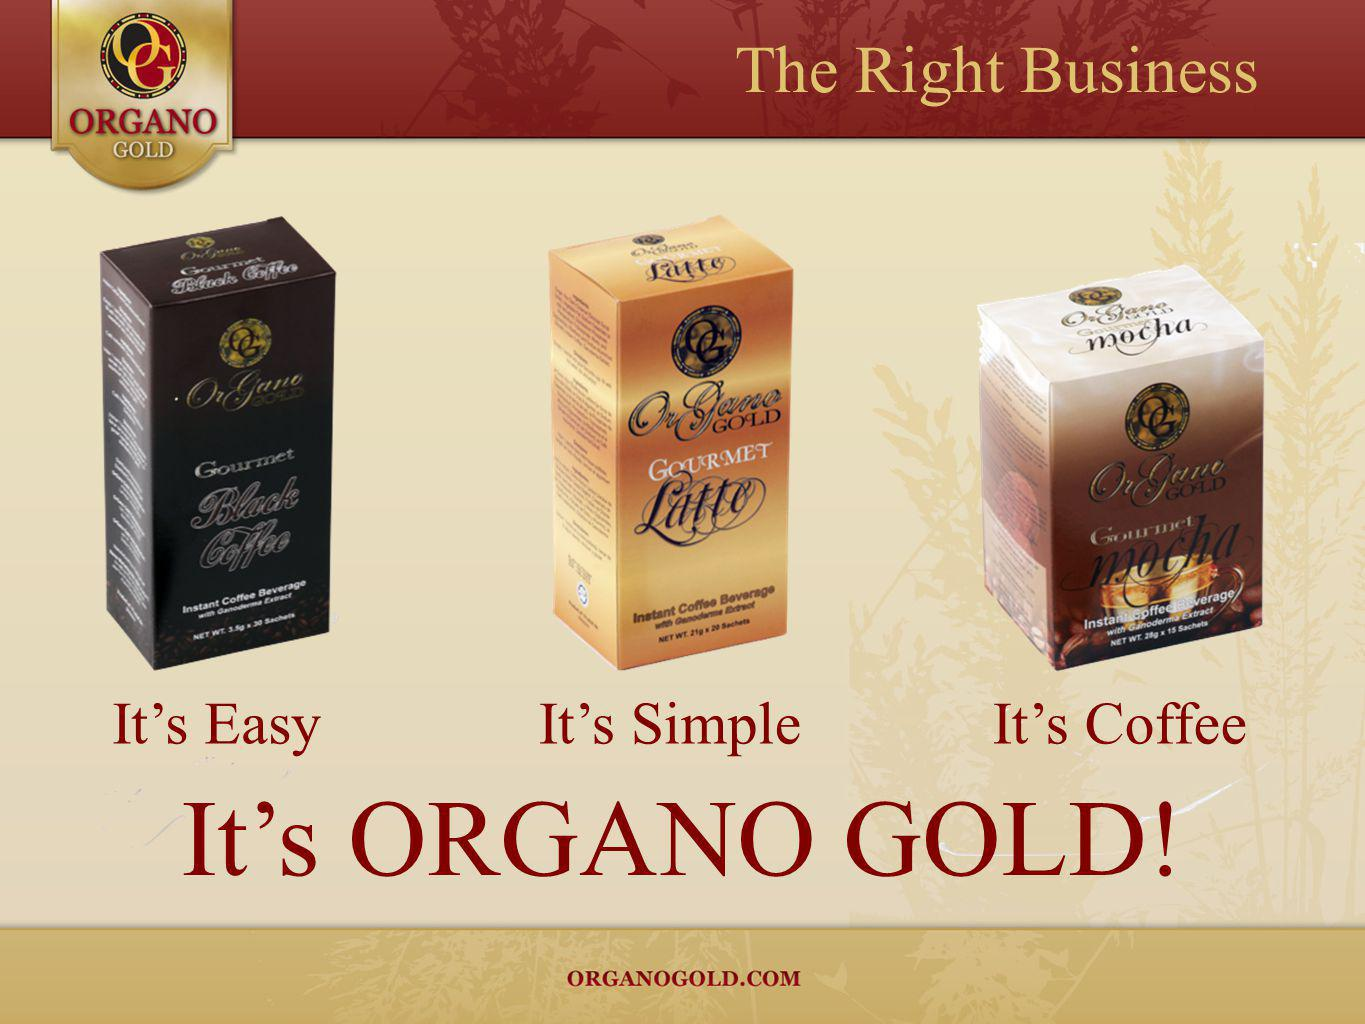 The Right Business It's Easy It's Simple It's Coffee It's ORGANO GOLD!